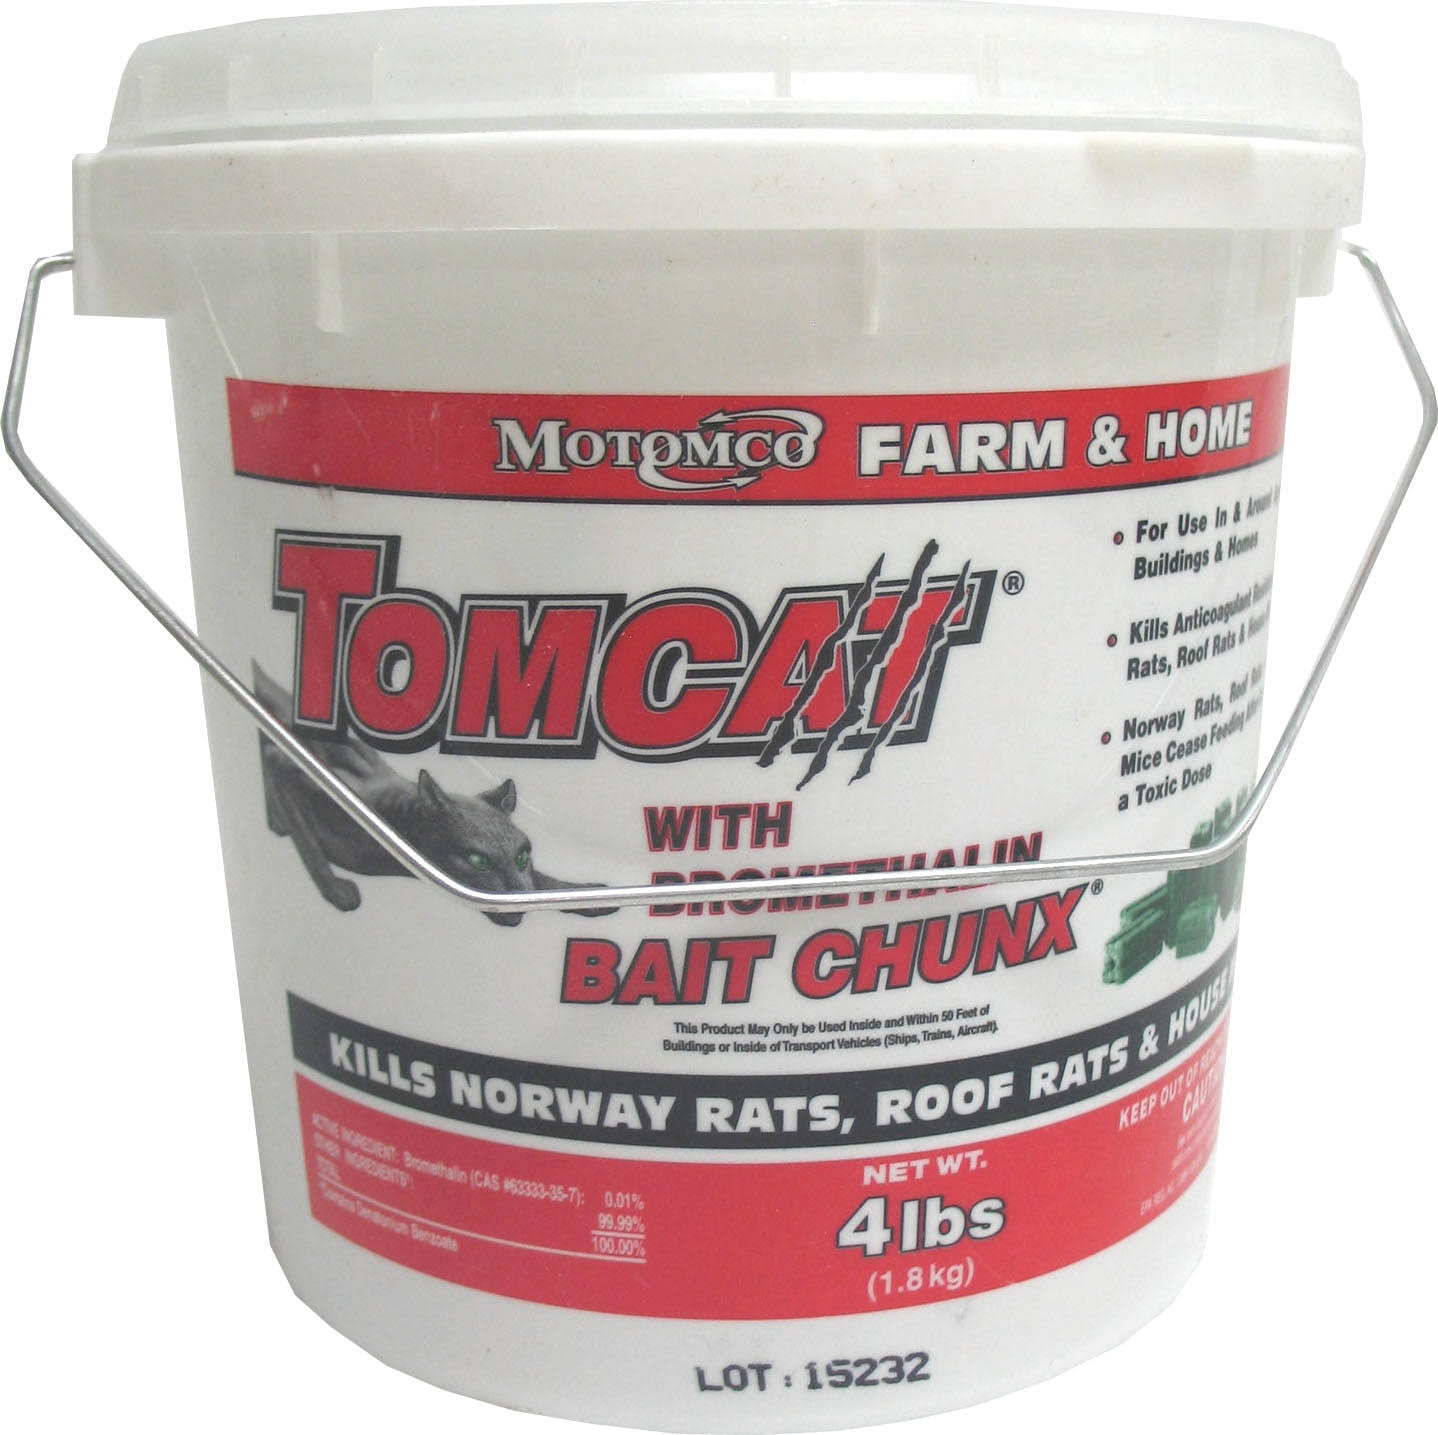 Motomco Tomcat Mouse and Rat Bromethalin Bait Chunx - 4lb